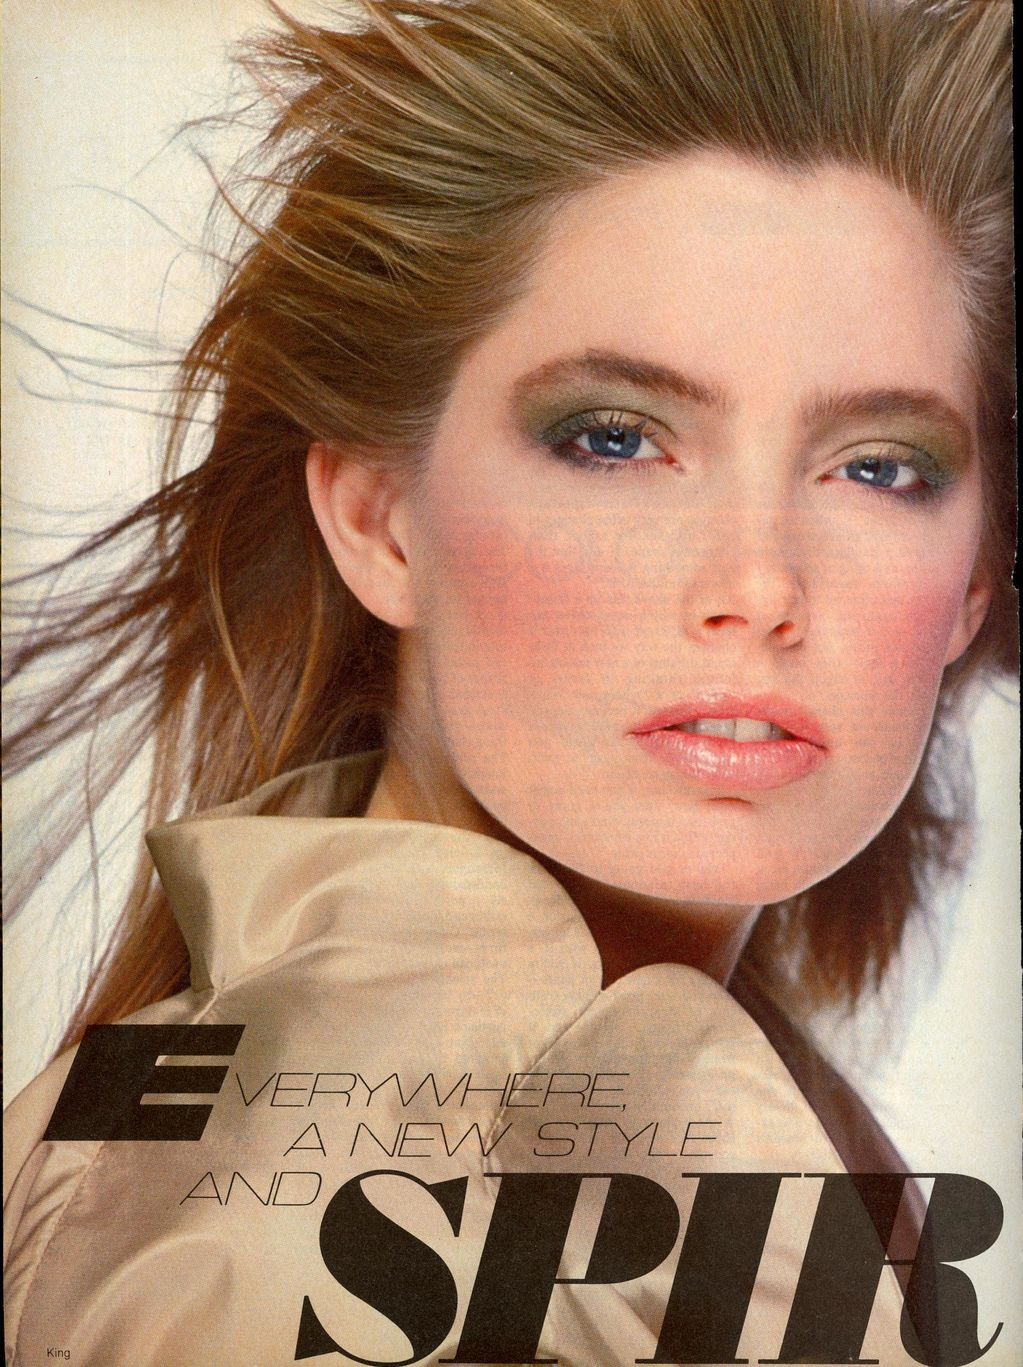 US Vogue March 1982 Everywhere A New Style and Spirit Photo Bill King  Models Kelly Emberg & Terri Farrell